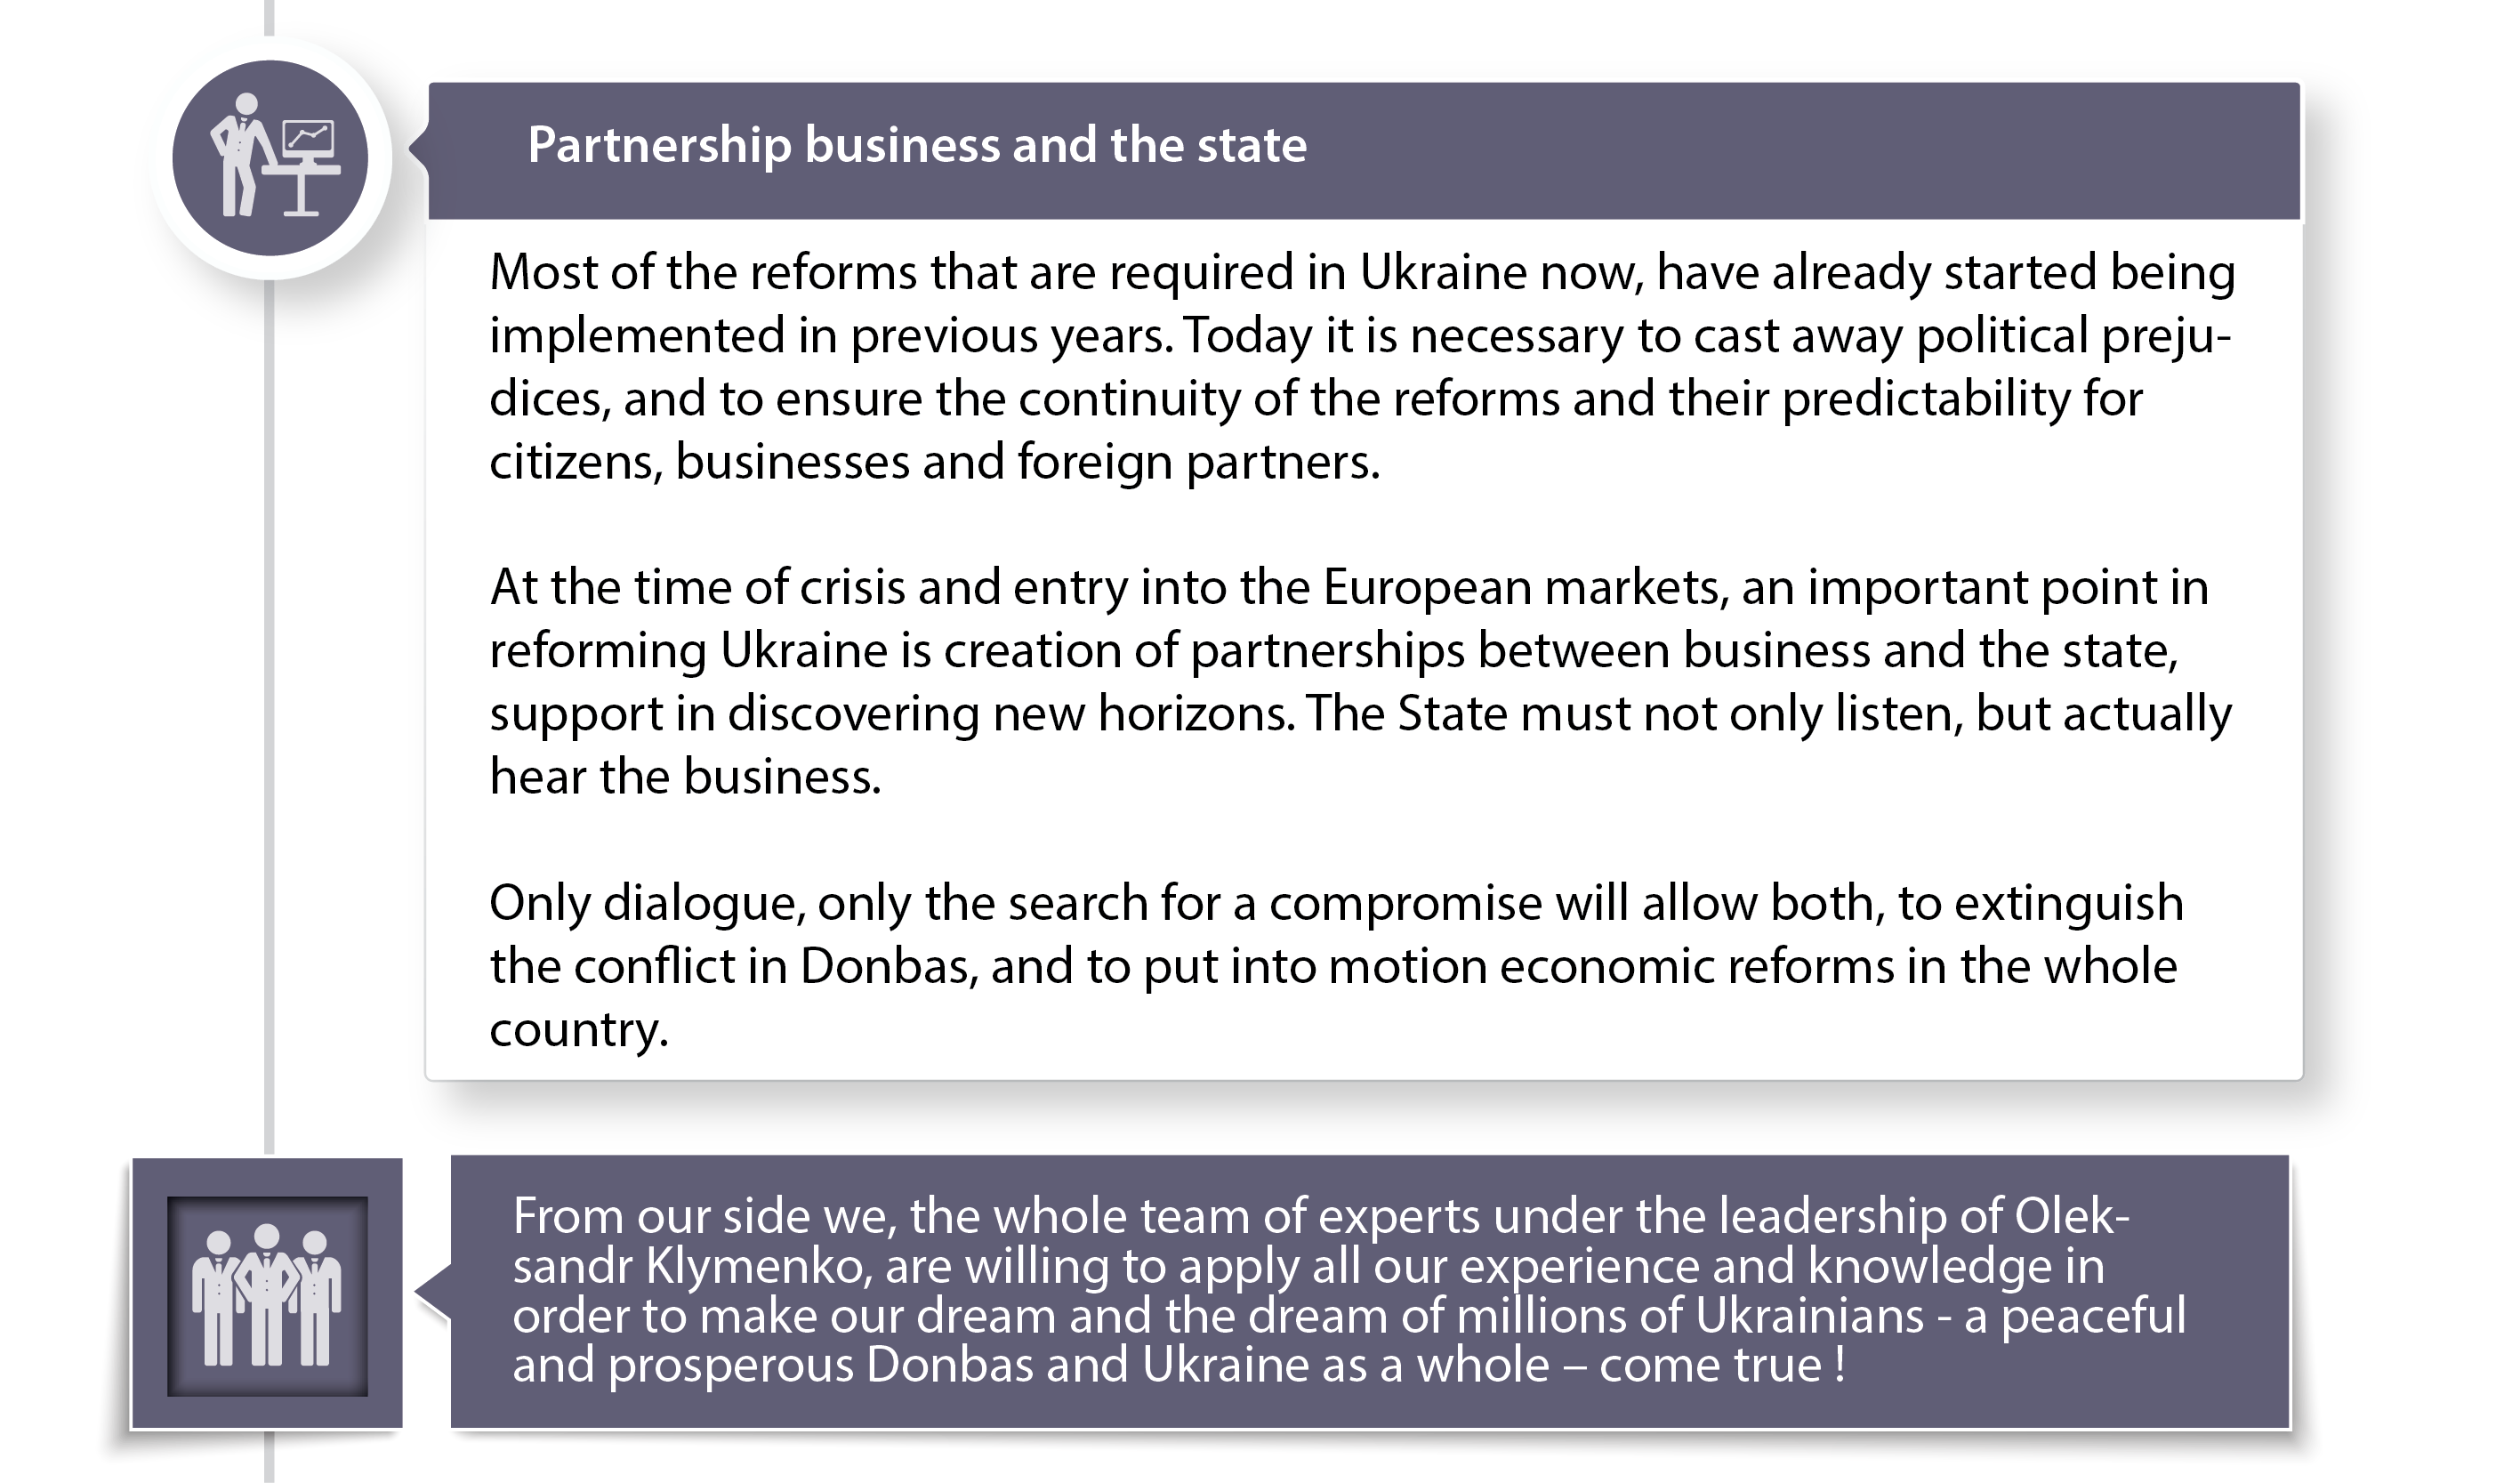 Partnership business and the state